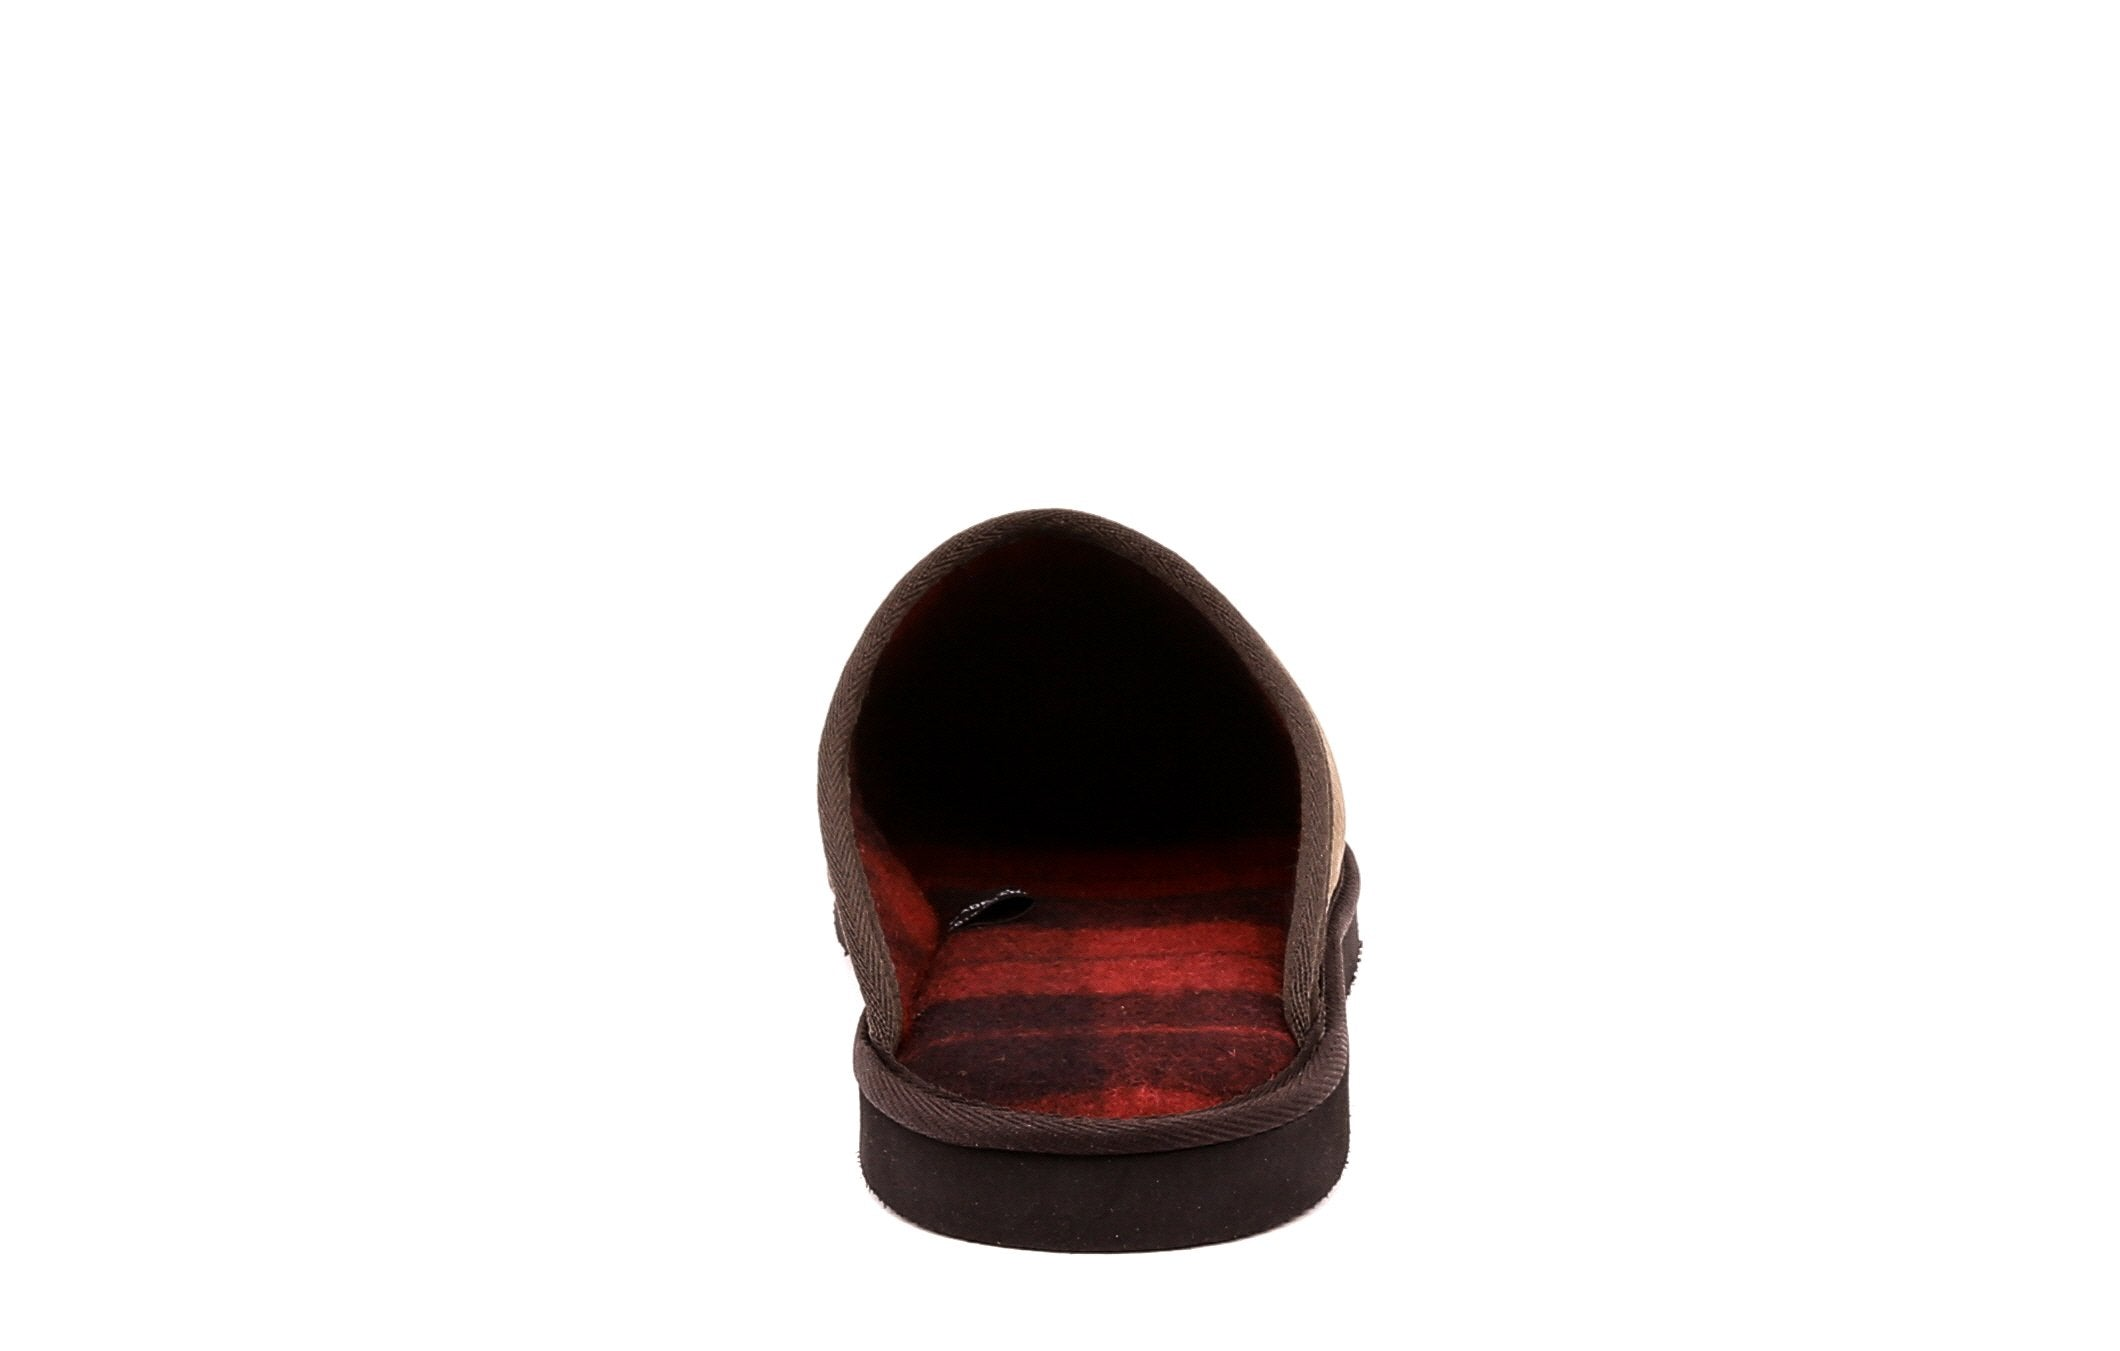 Carson Men's Mule Slippers in Genuine Leather - Alfred Cloutier Ltd. - Canada